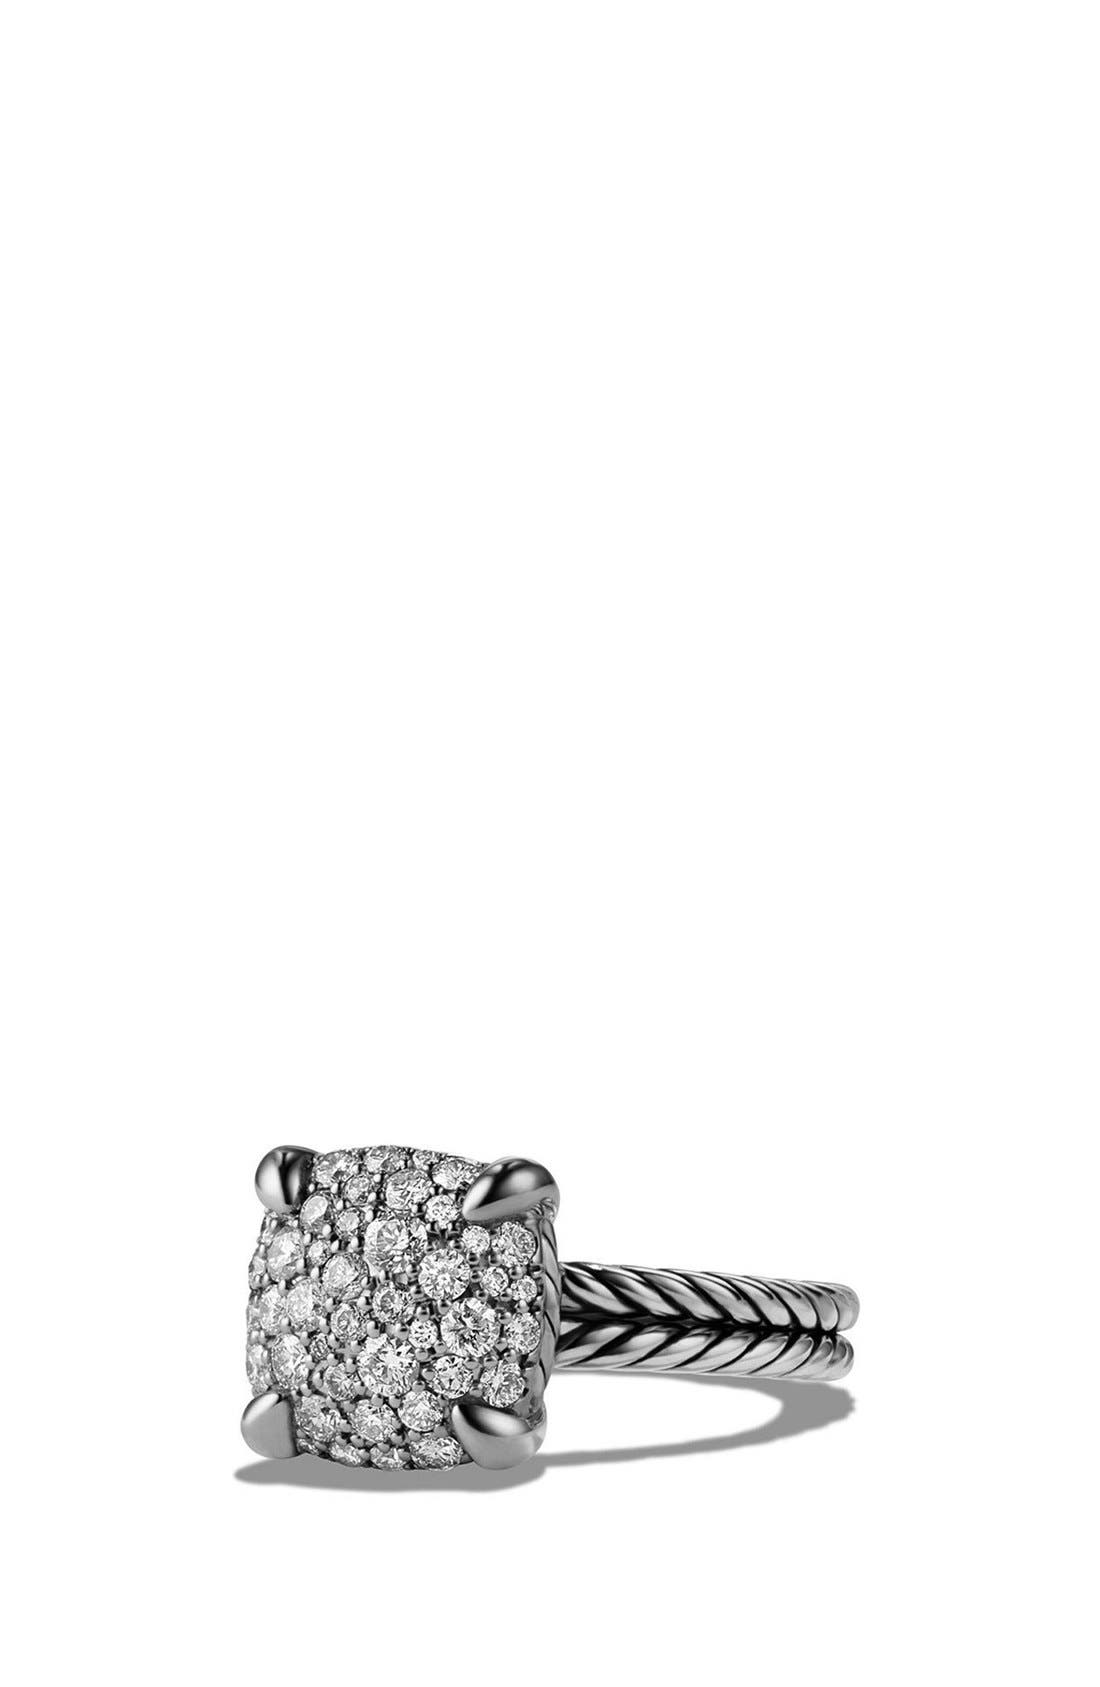 'Châtelaine' Ring with Diamonds,                         Main,                         color, Silver